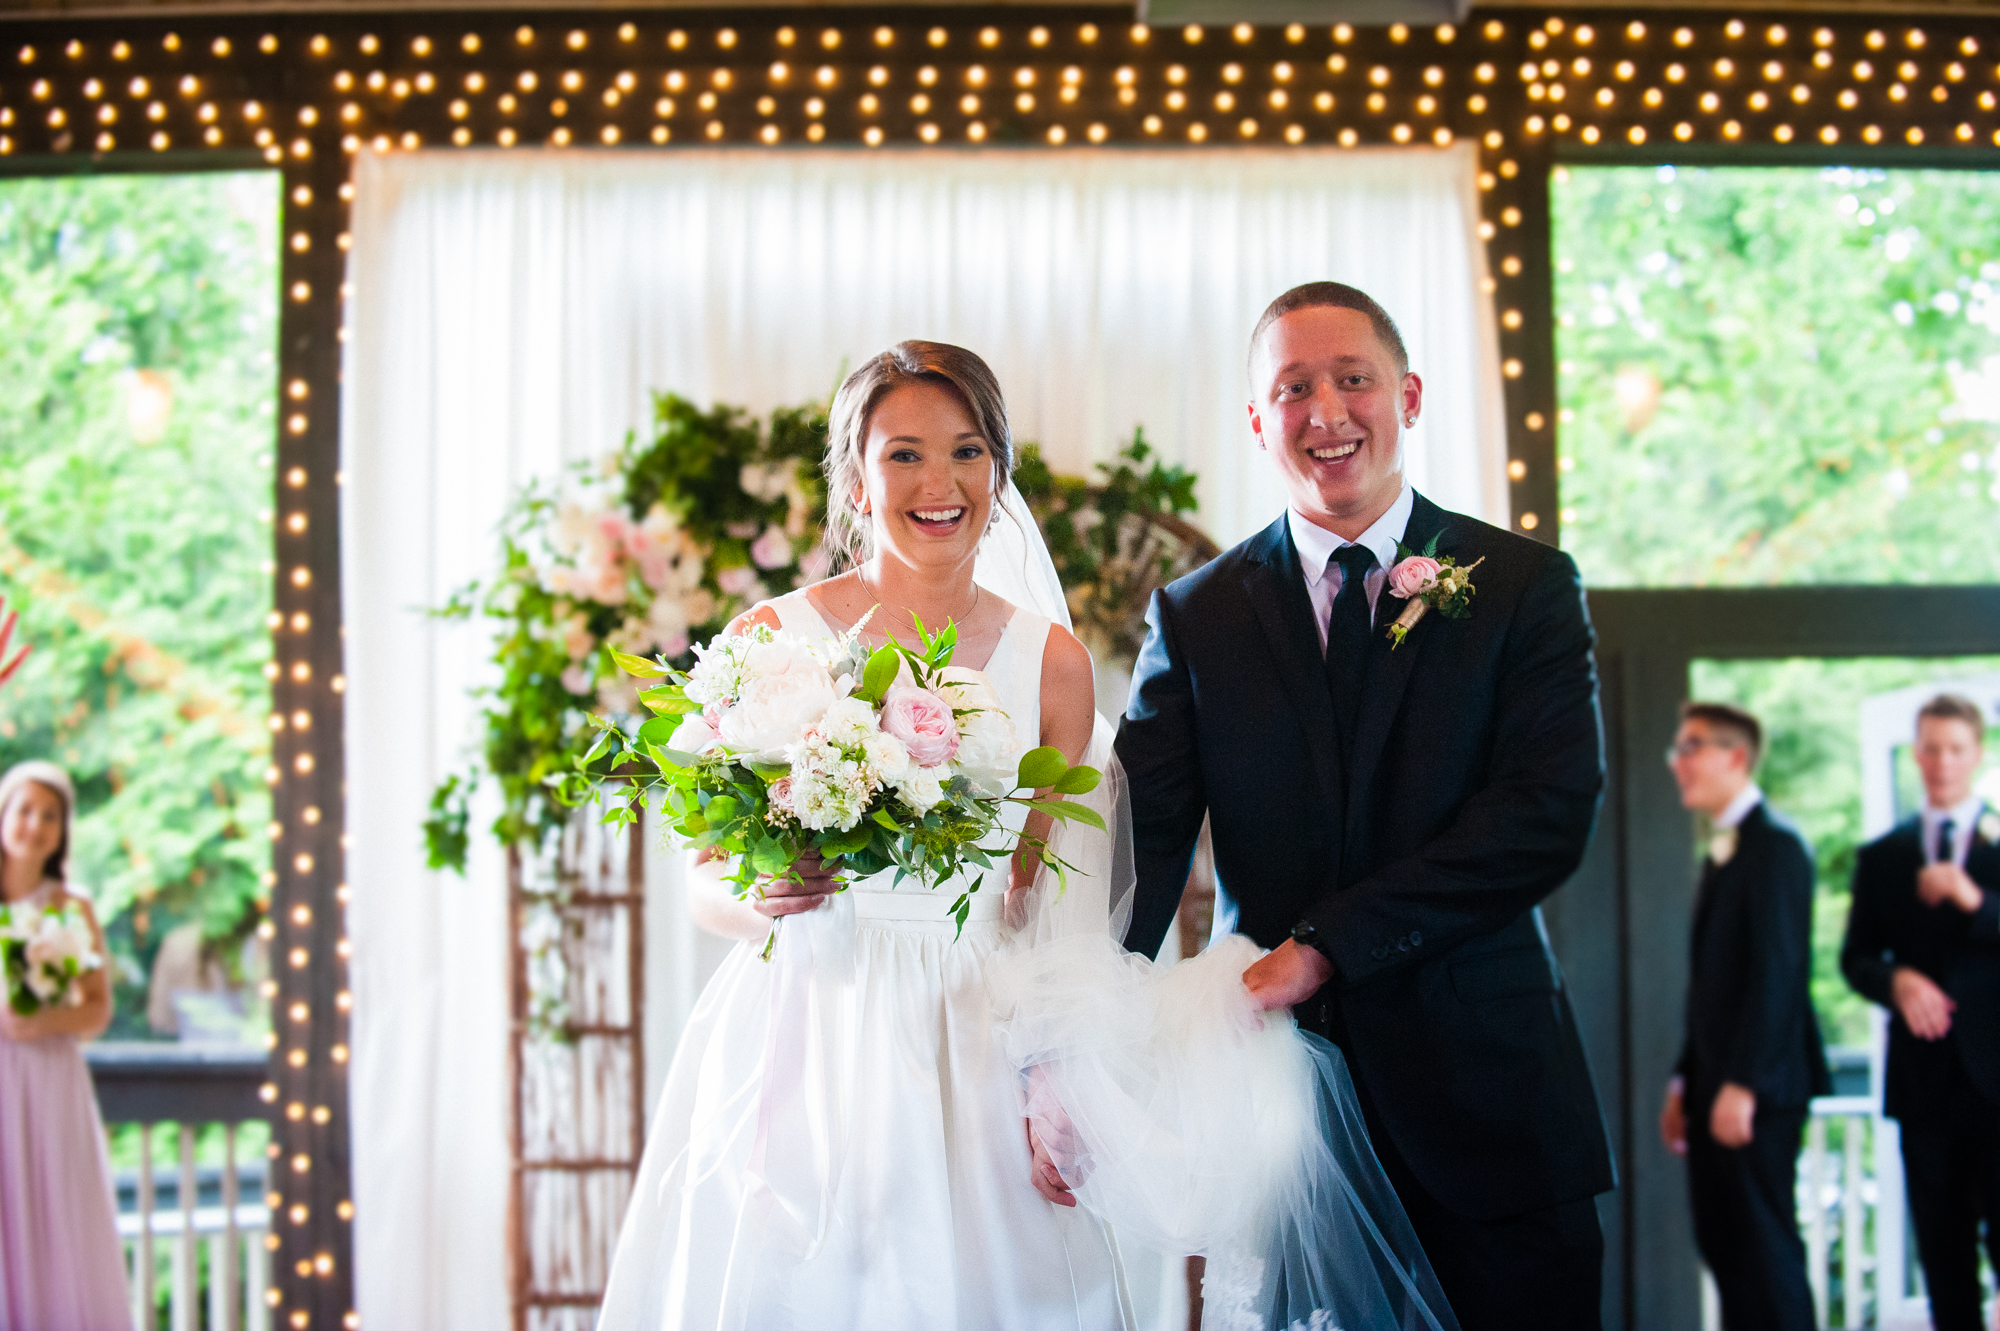 just married bride and groom walk down aisle after their wedding ceremony at Biltmore